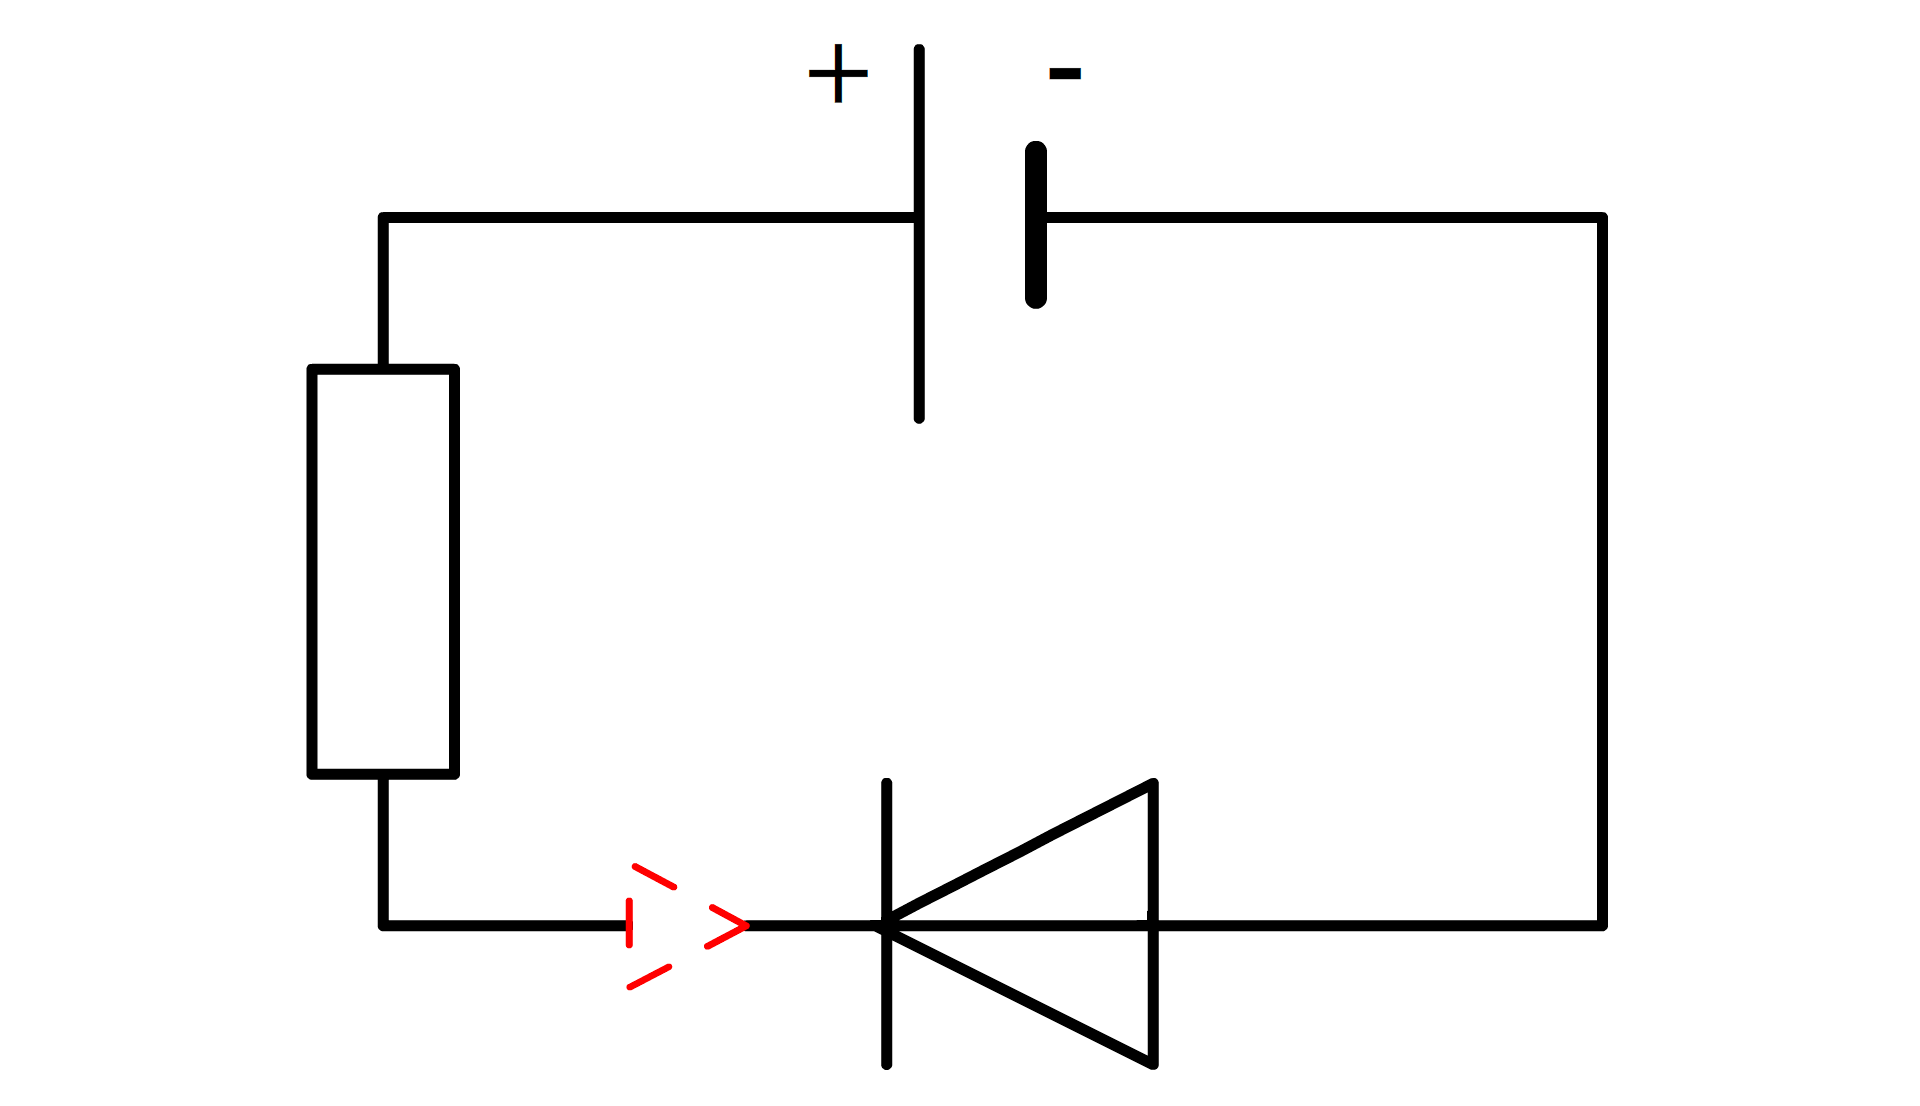 B Simple Circuit Wiring Diagram For Professional Class Amplifier Les Diodes Cours